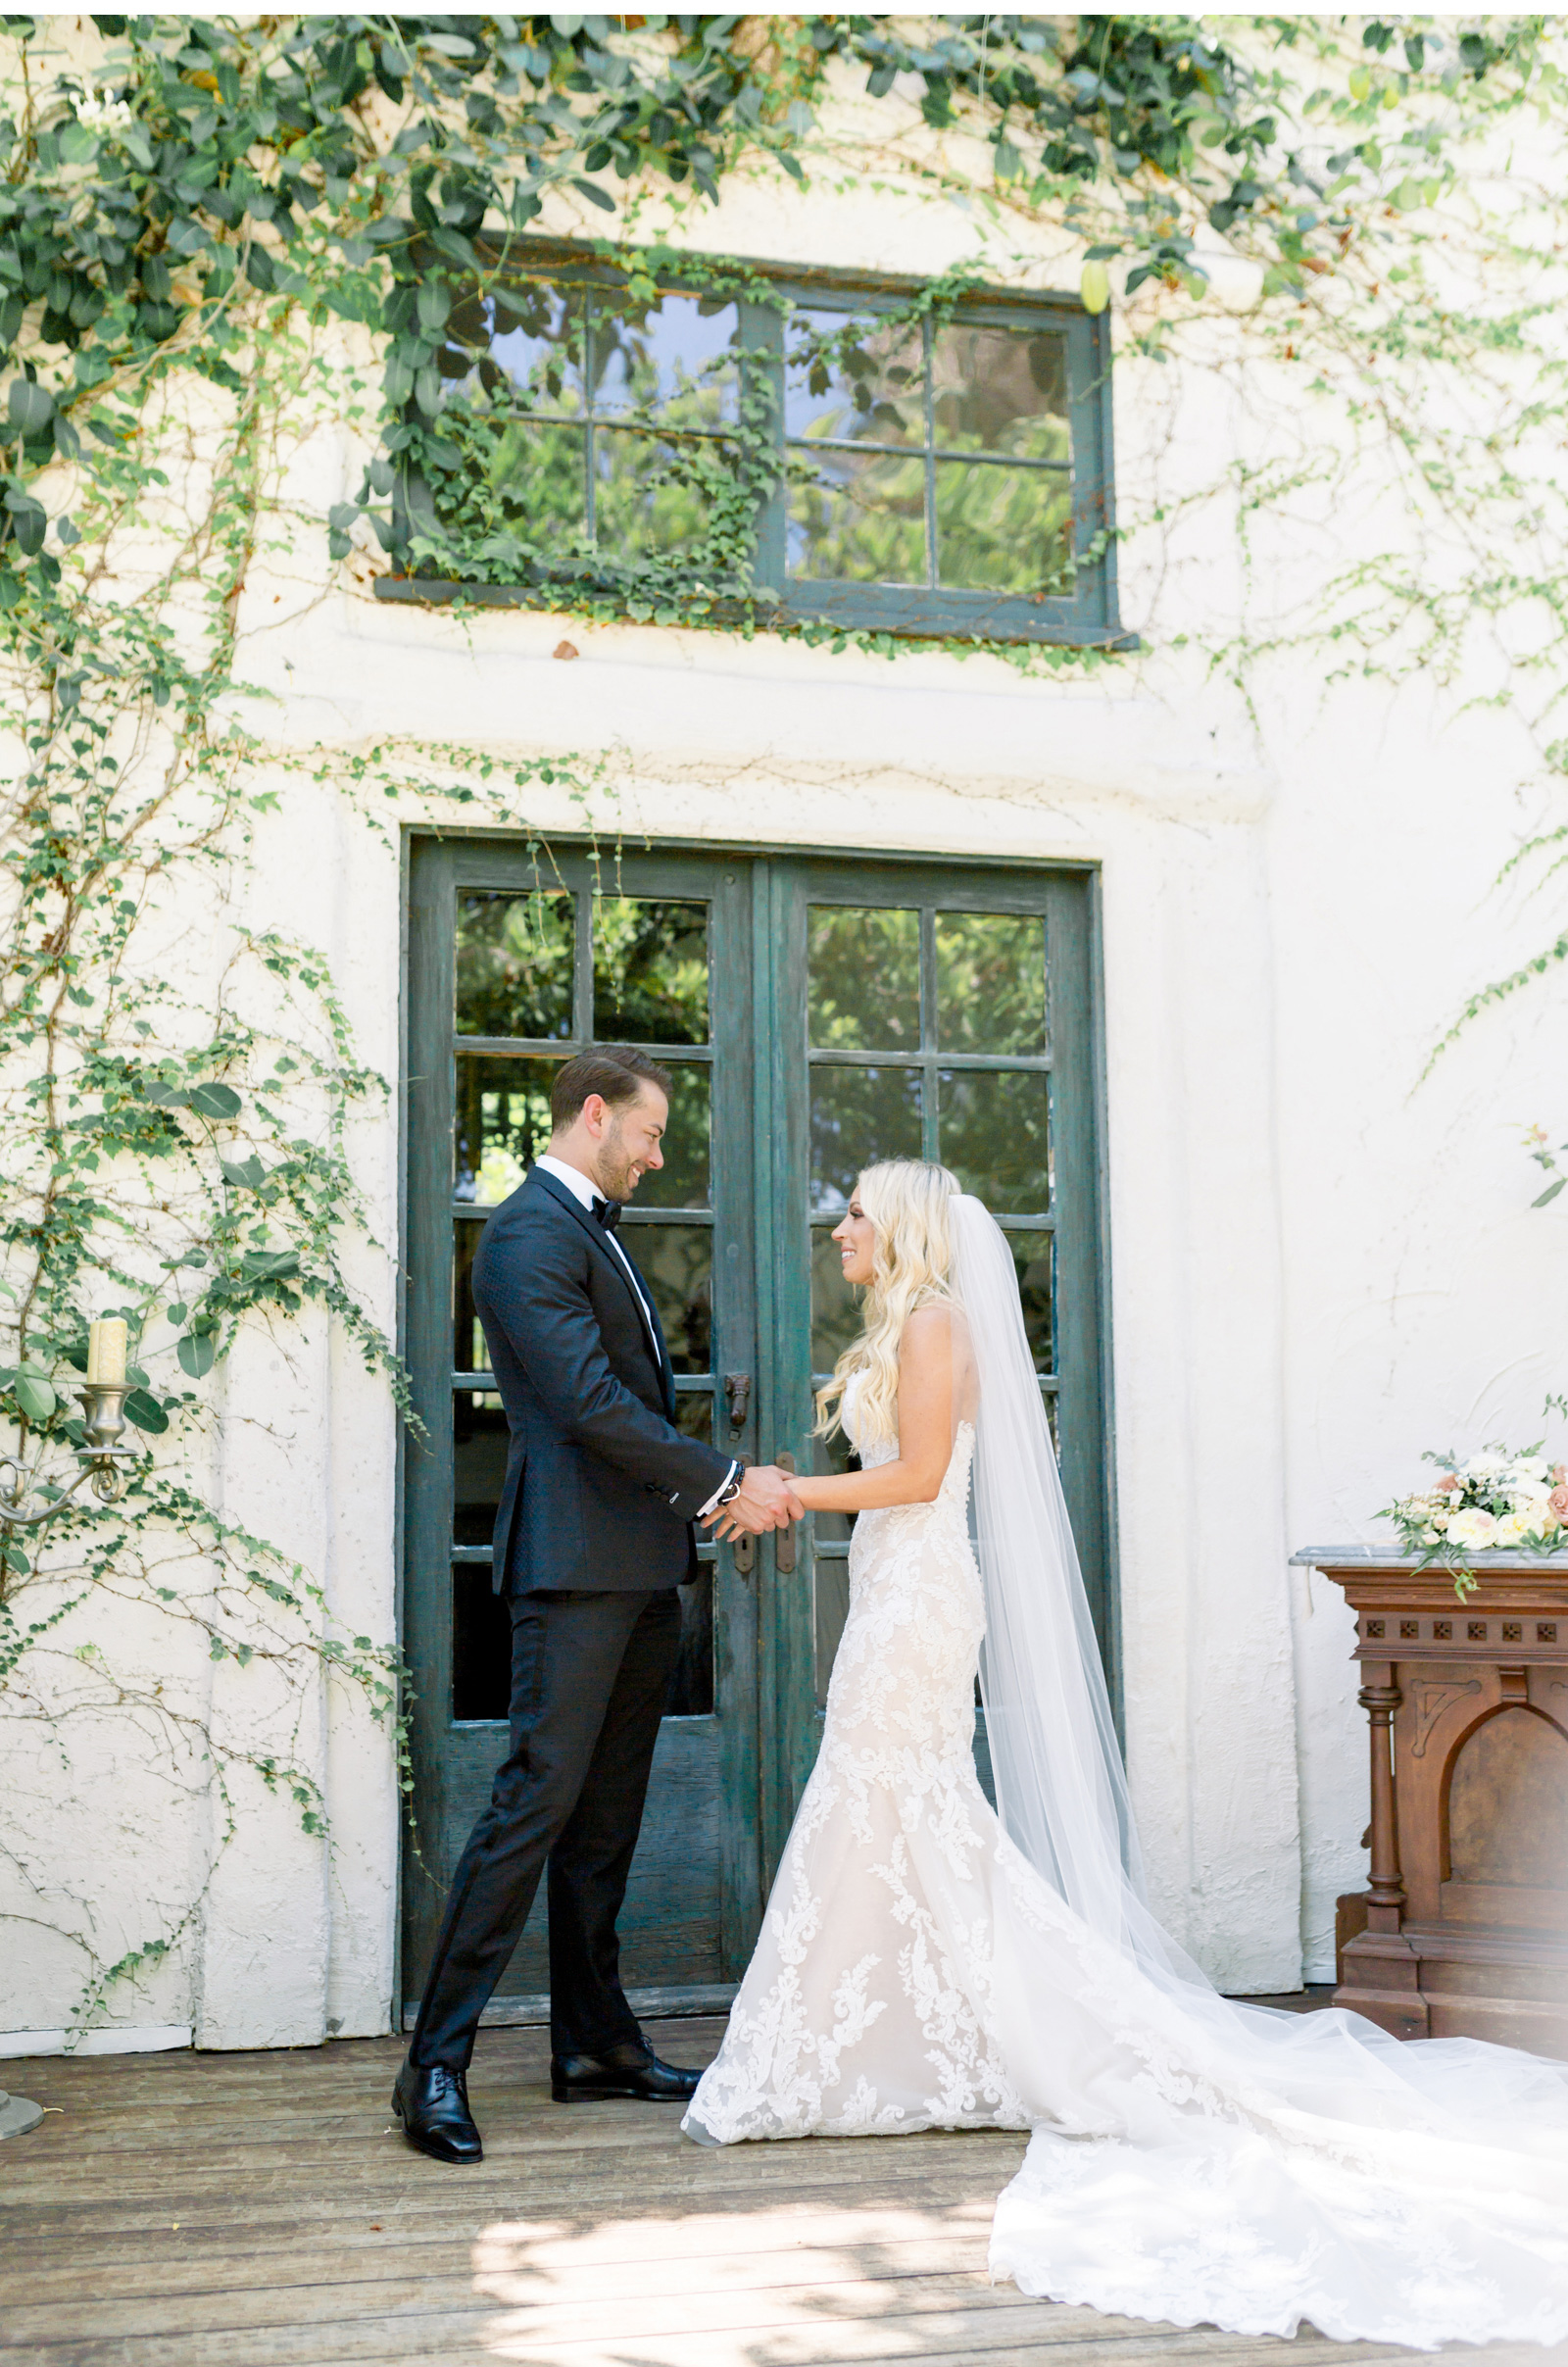 San-Juan-Capistrano-Wedding-Photographer-Malibu-Weddings-Malibu-Wedding-Venues-Natalie-Schutt-Photographer_01.jpg